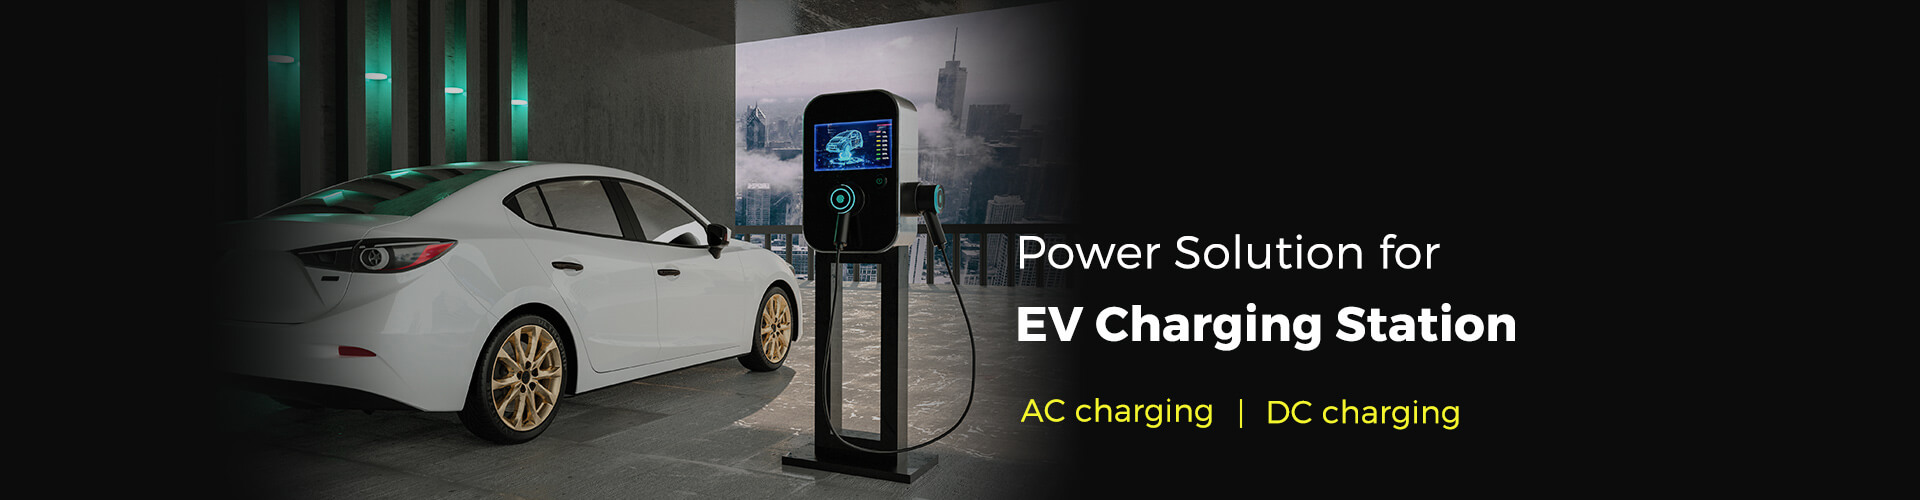 Power Solution for EV Charging Station -- DC charging   AC charging